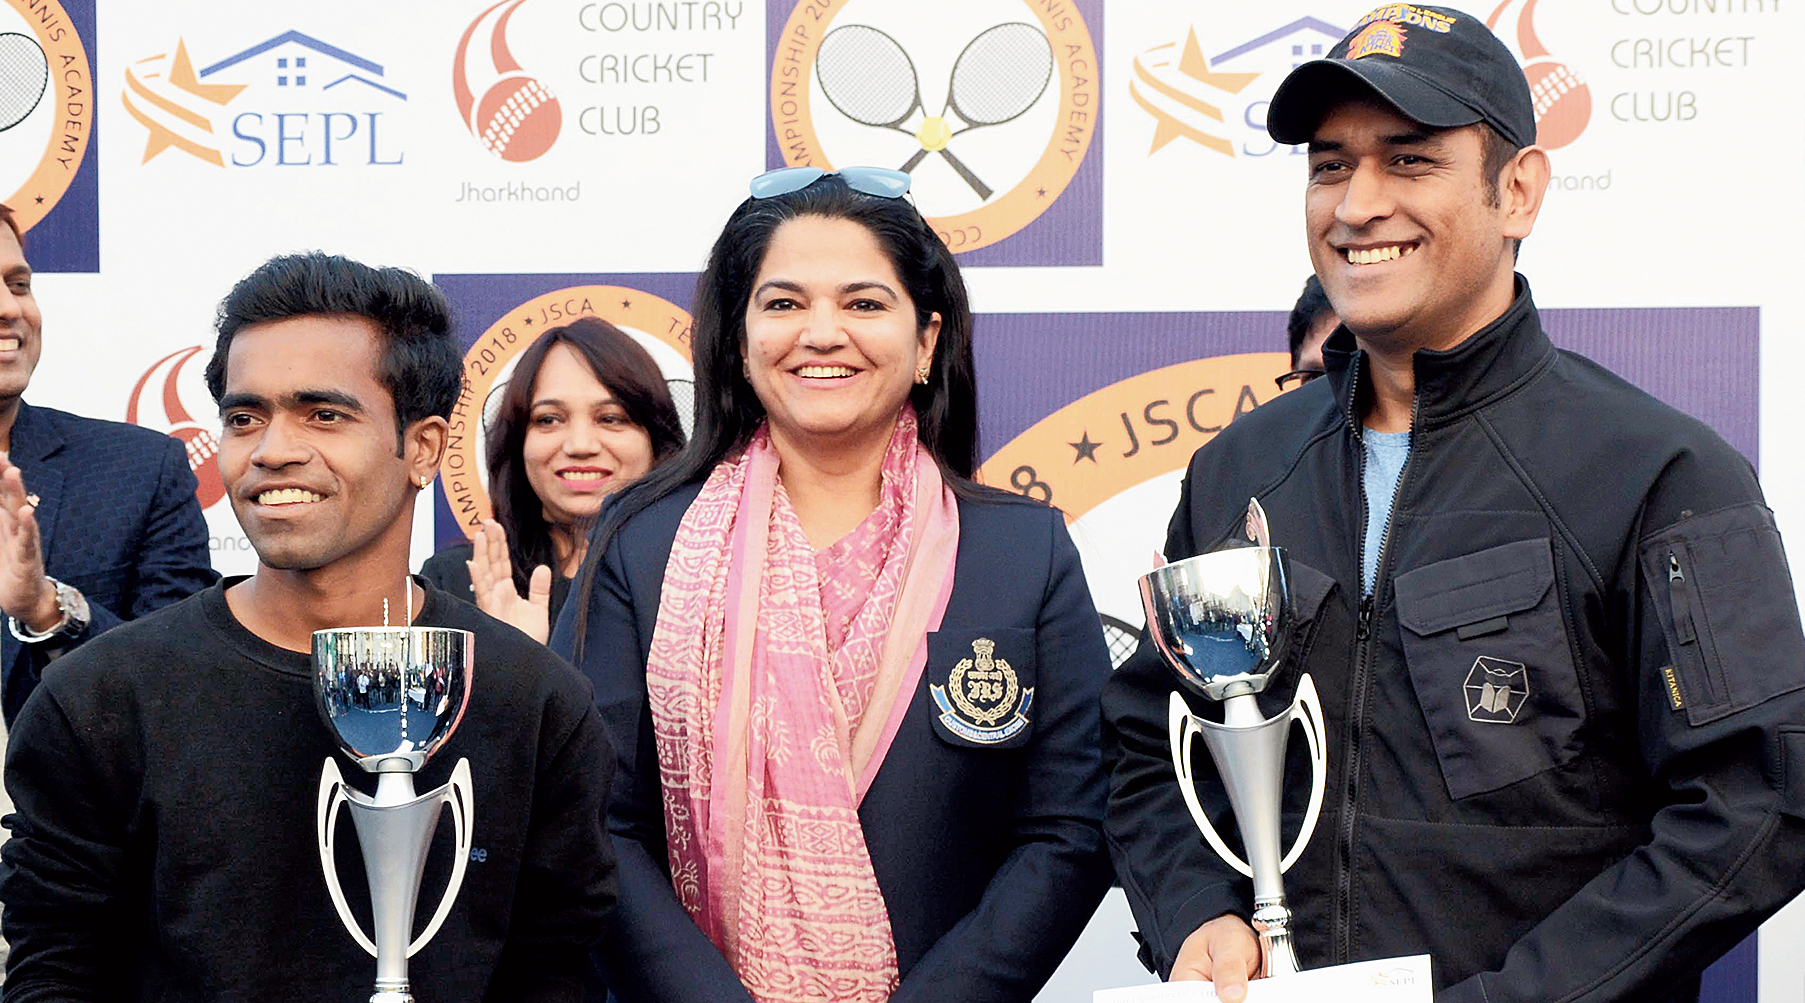 Mahendra Singh Dhoni receives a trophy from income tax commissioner Monika Batra at a tennis tourney at JSCA stadium in Ranchi on Friday.